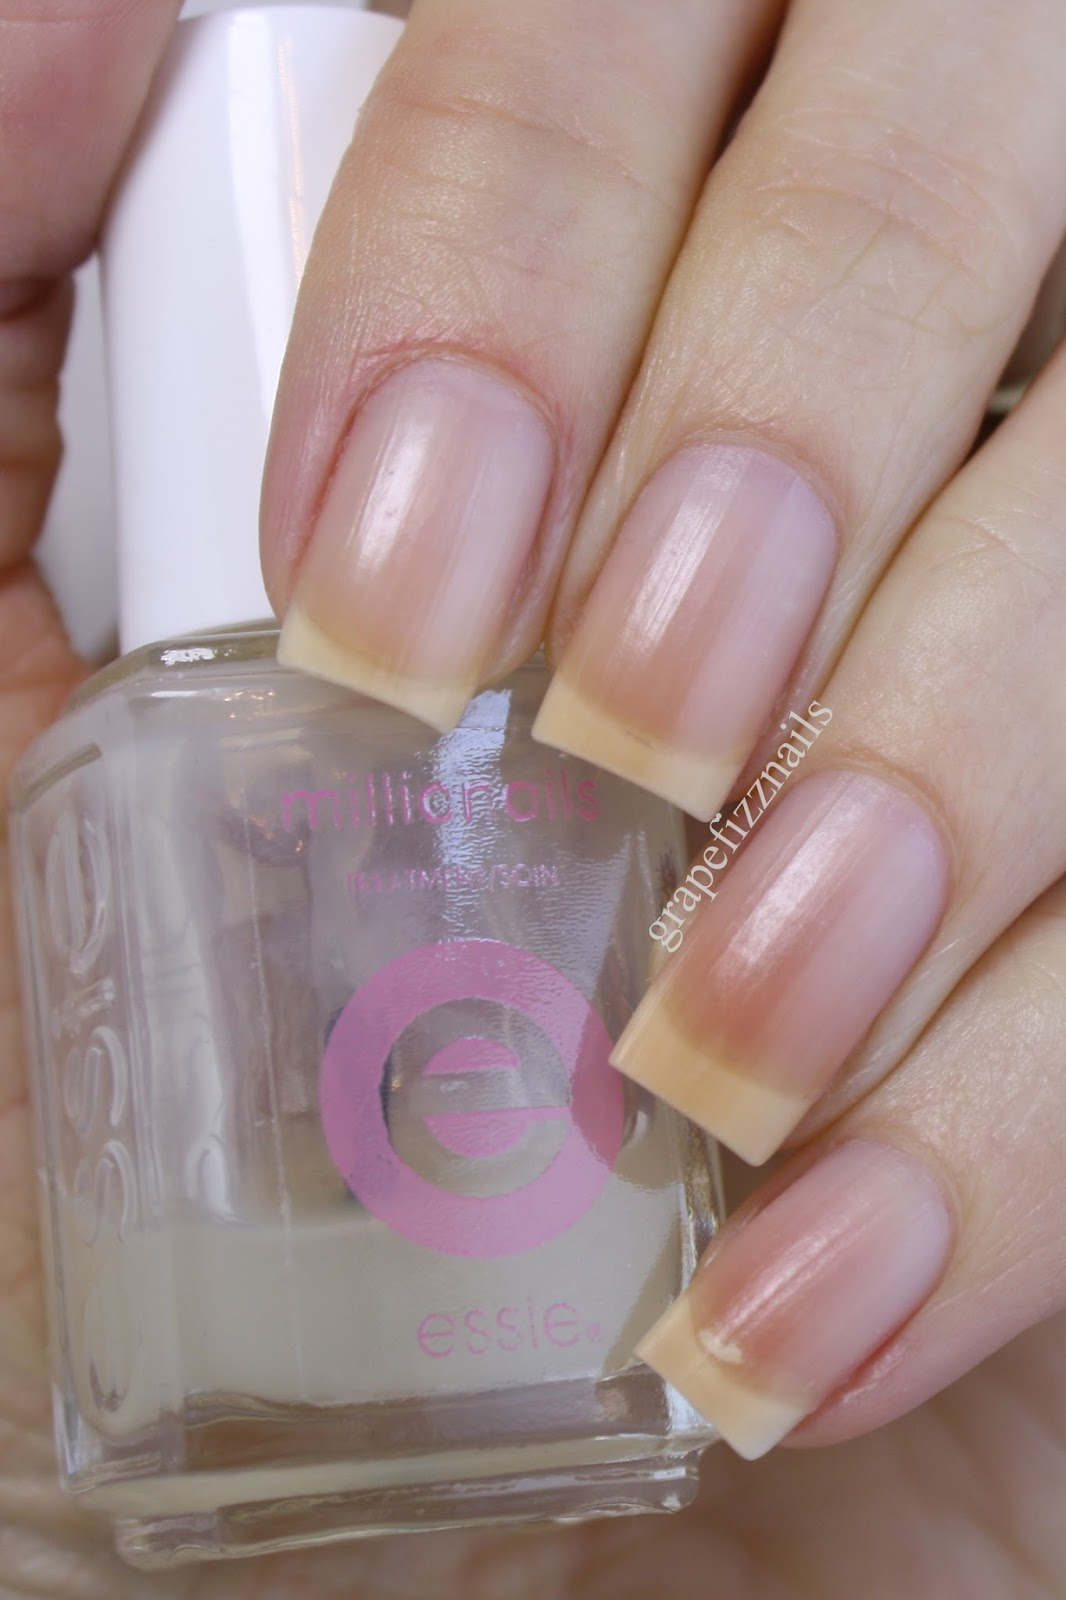 Grape Fizz Nails: My Nail Care Routine